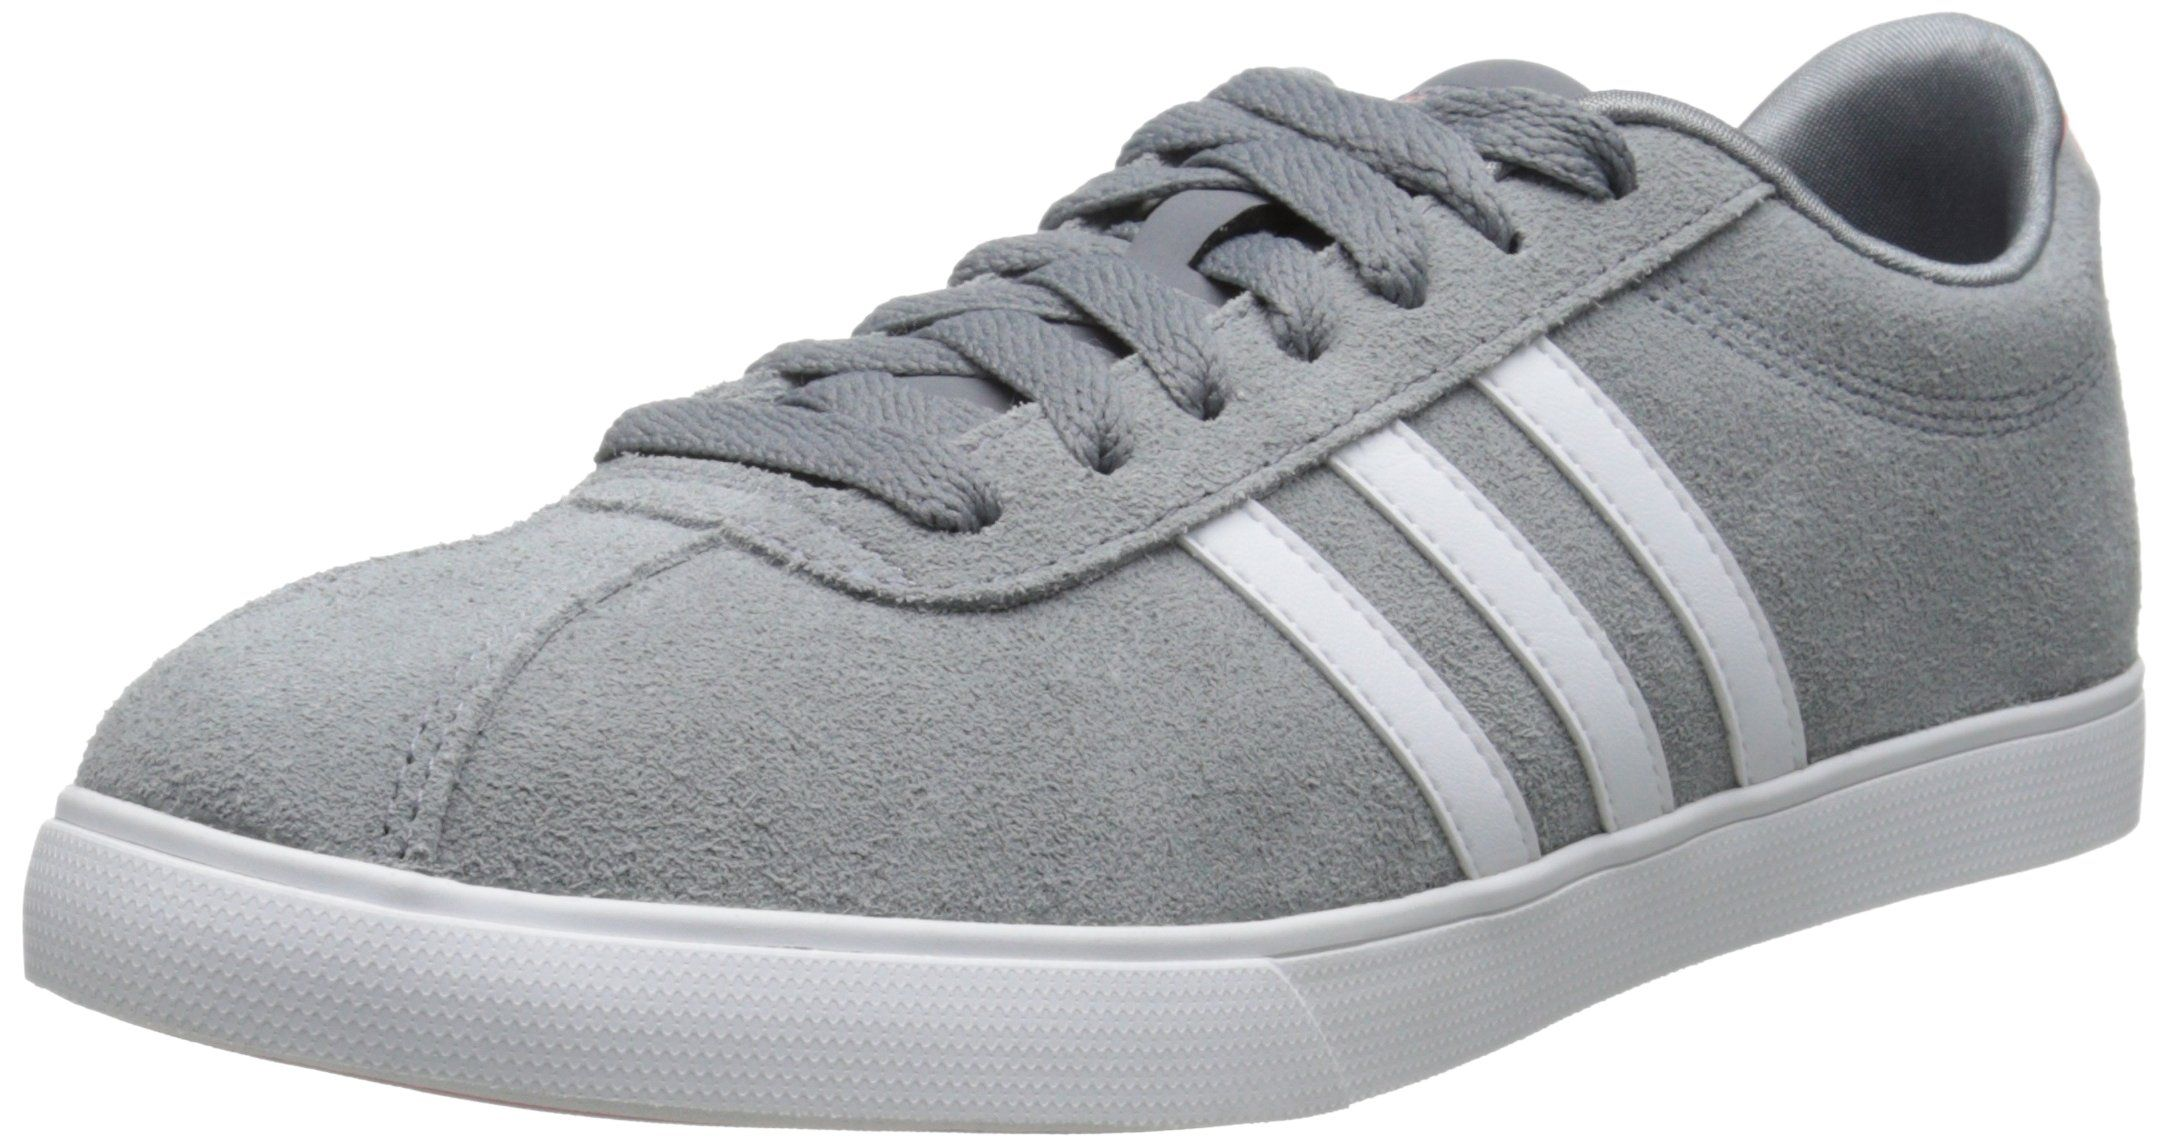 outlet in stock classic styles adidas NEO Women's Courtset Sneaker, Grey/White/Pink, 8 M US ...